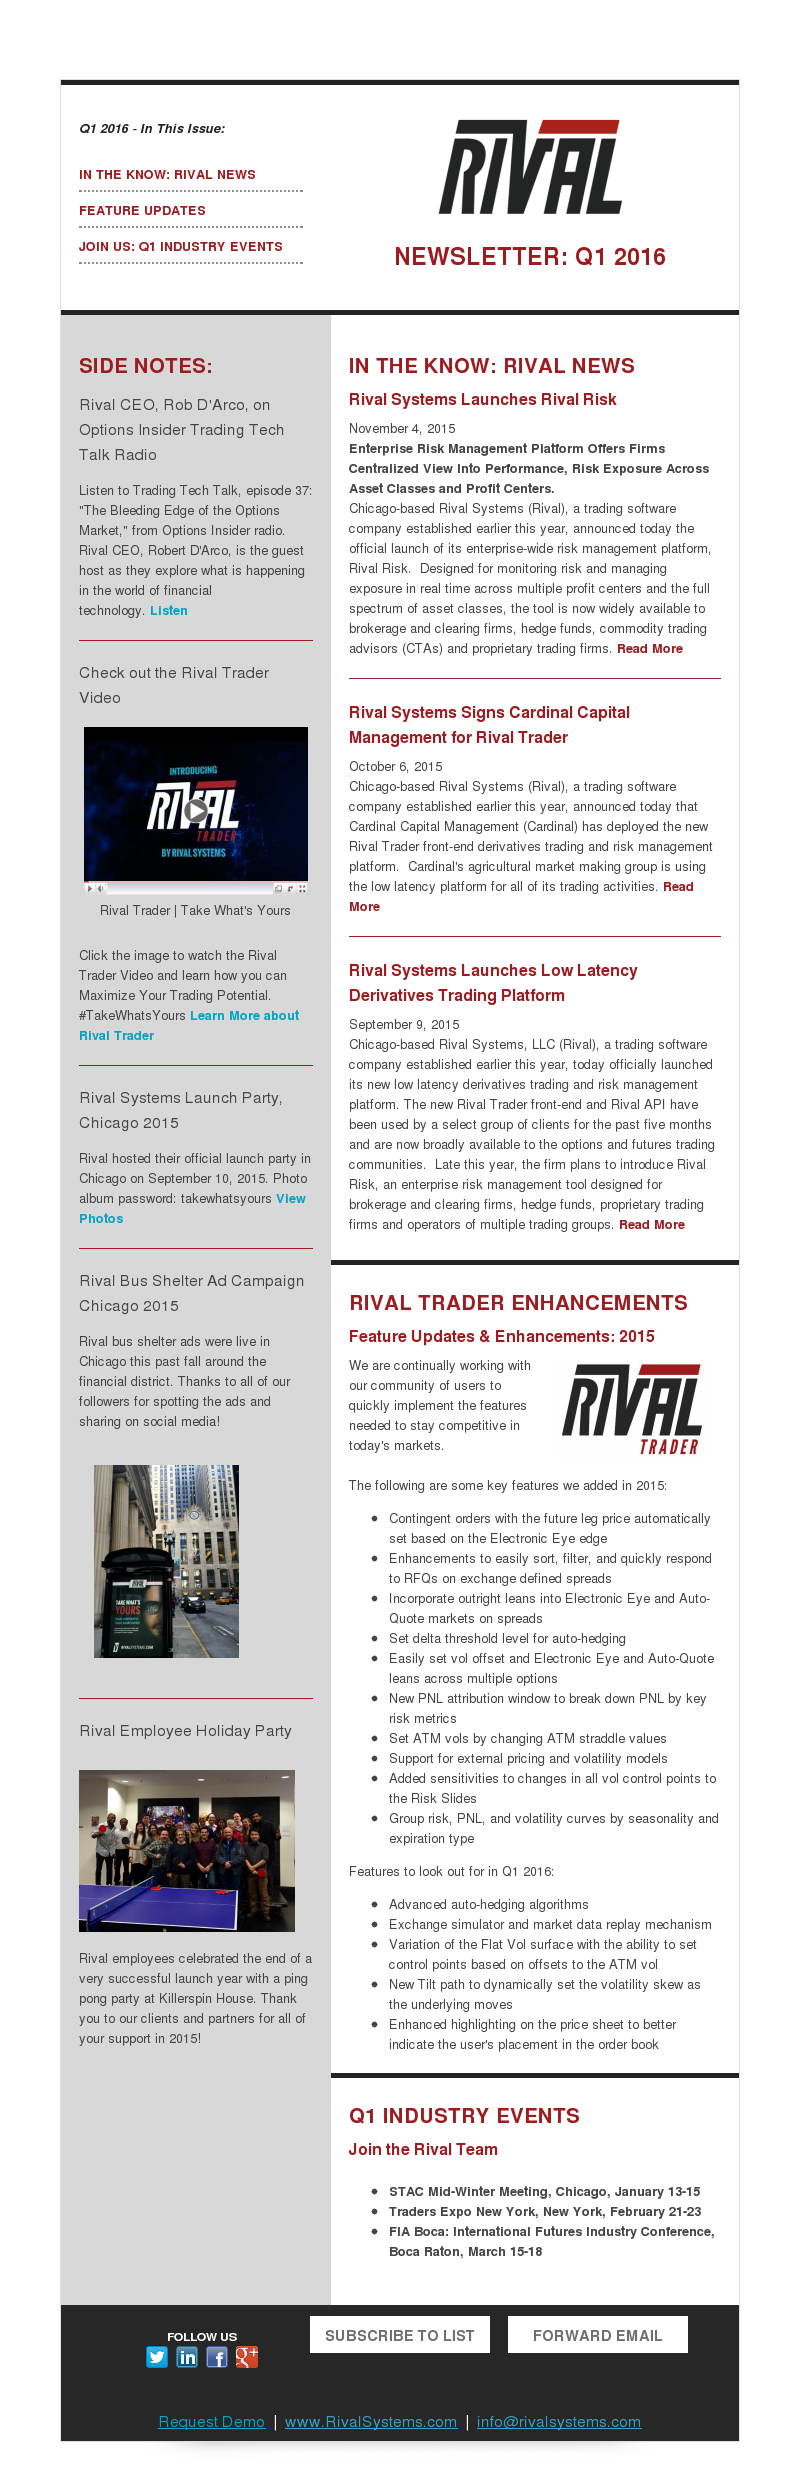 Rival Newsletter Q1 2016